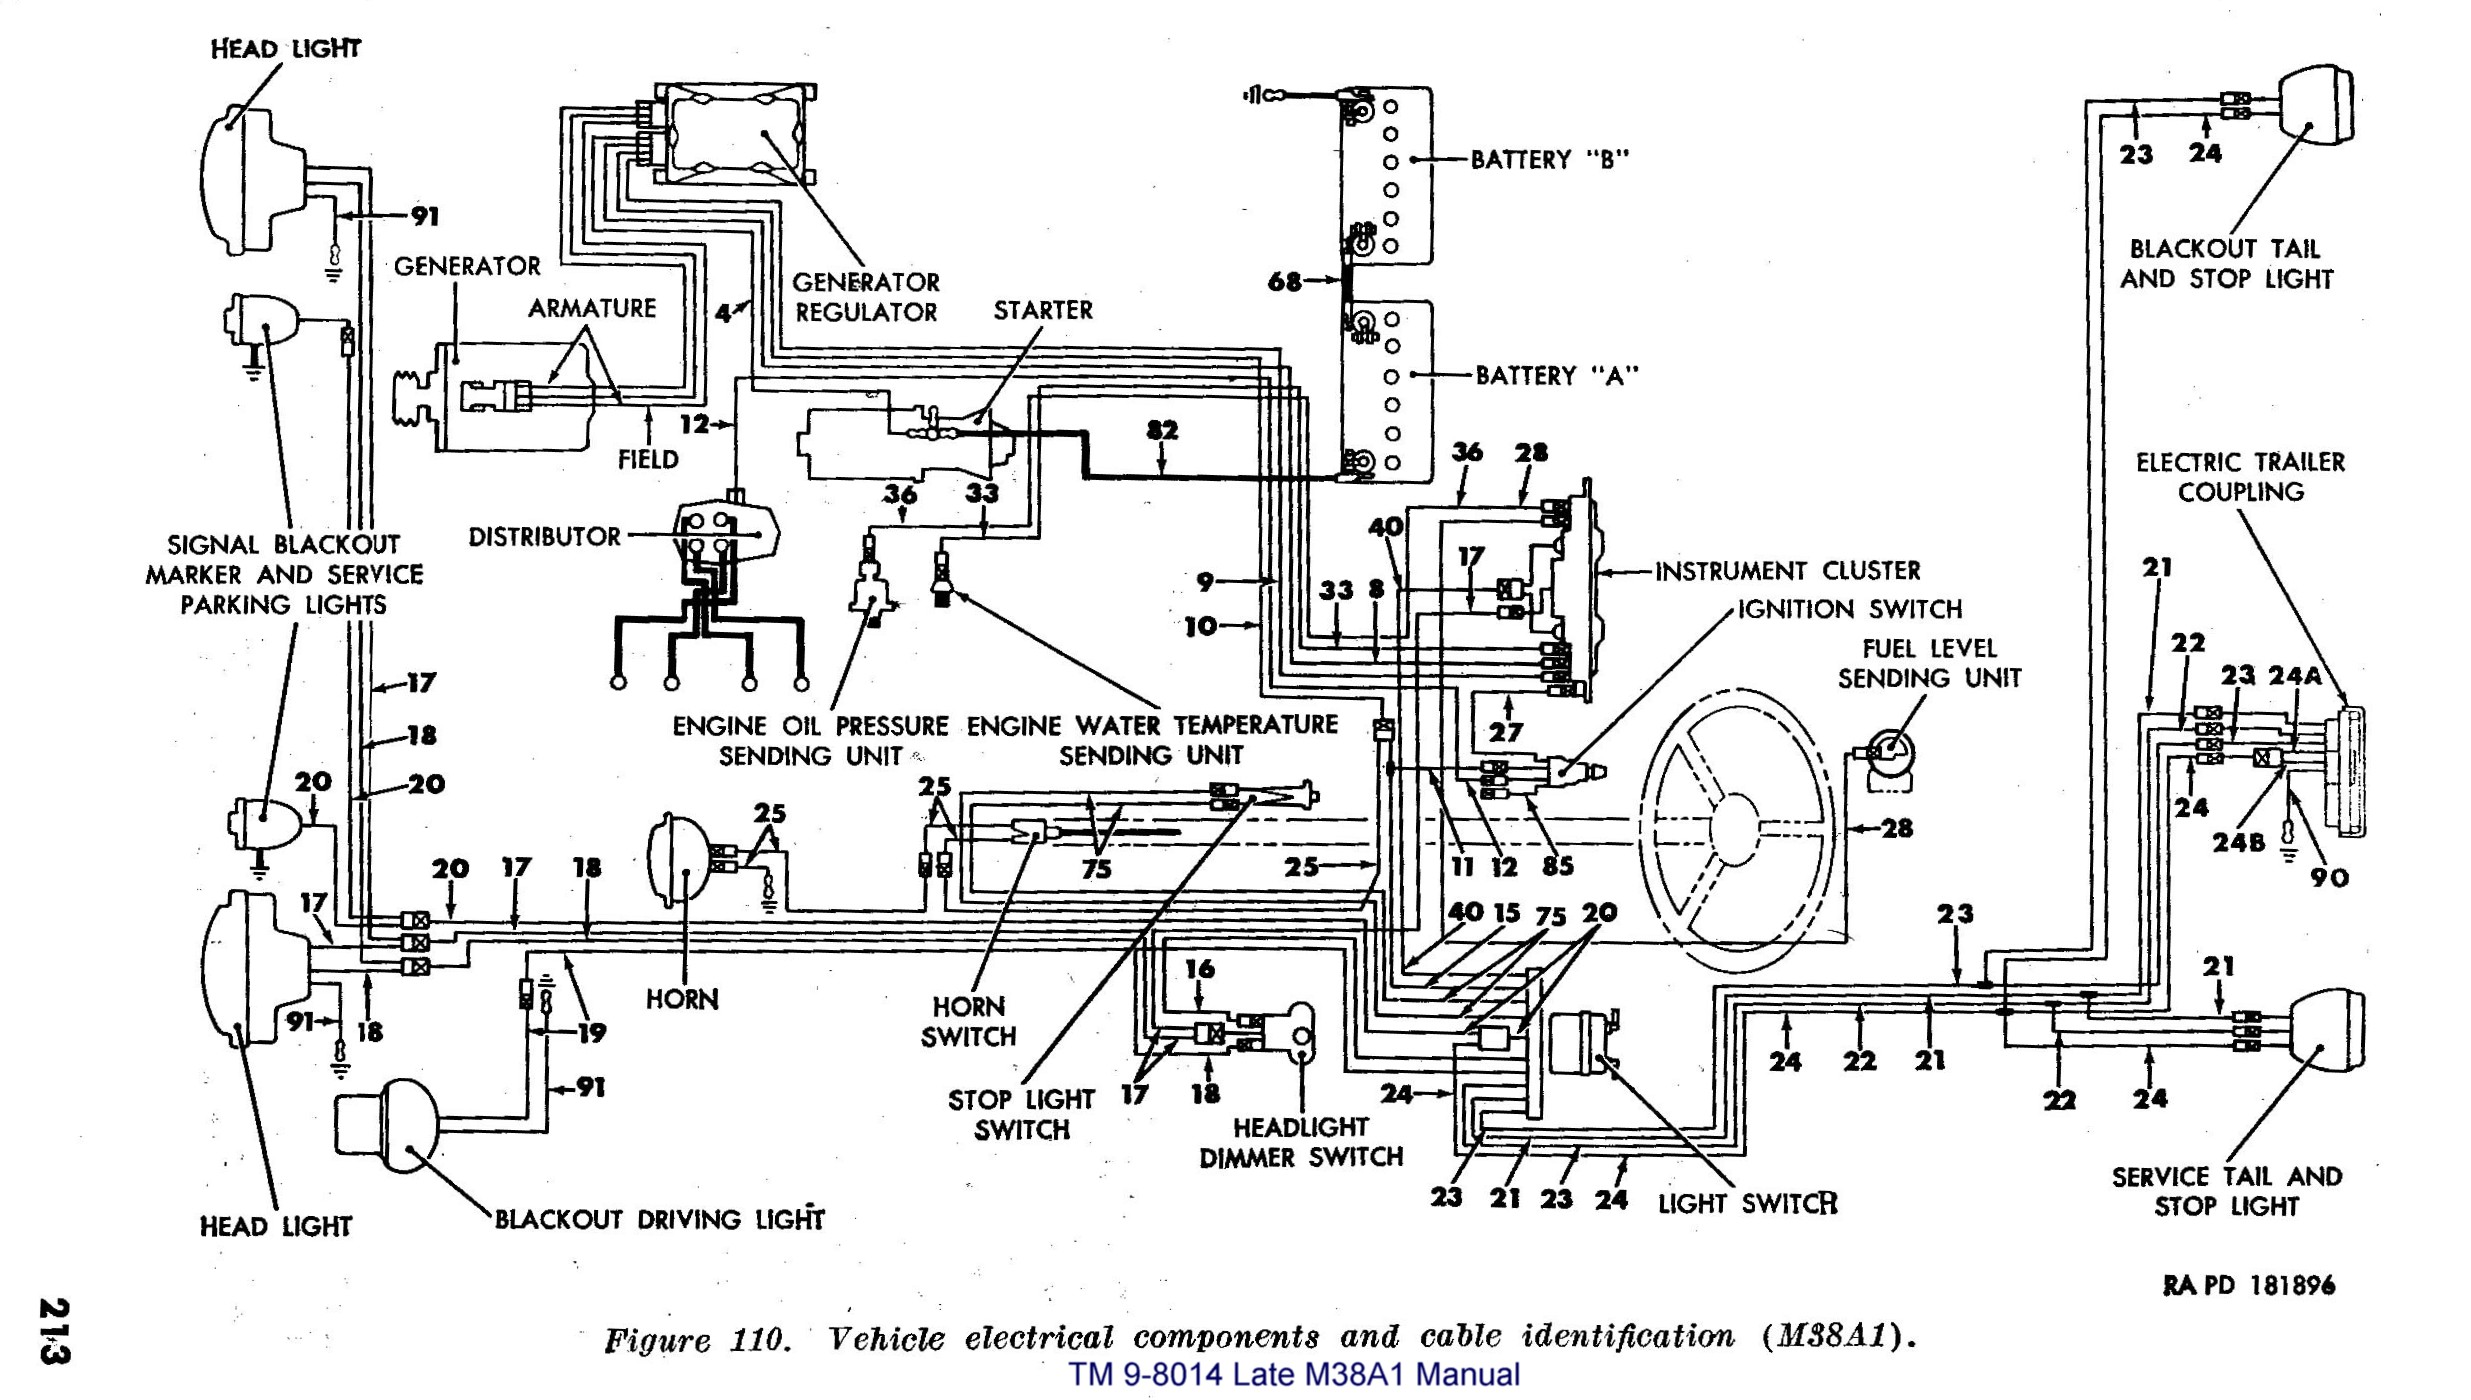 Cj3b Wiring Diagram Cj3 Wiring Diagram Wiring Diagram ~ ODICIS